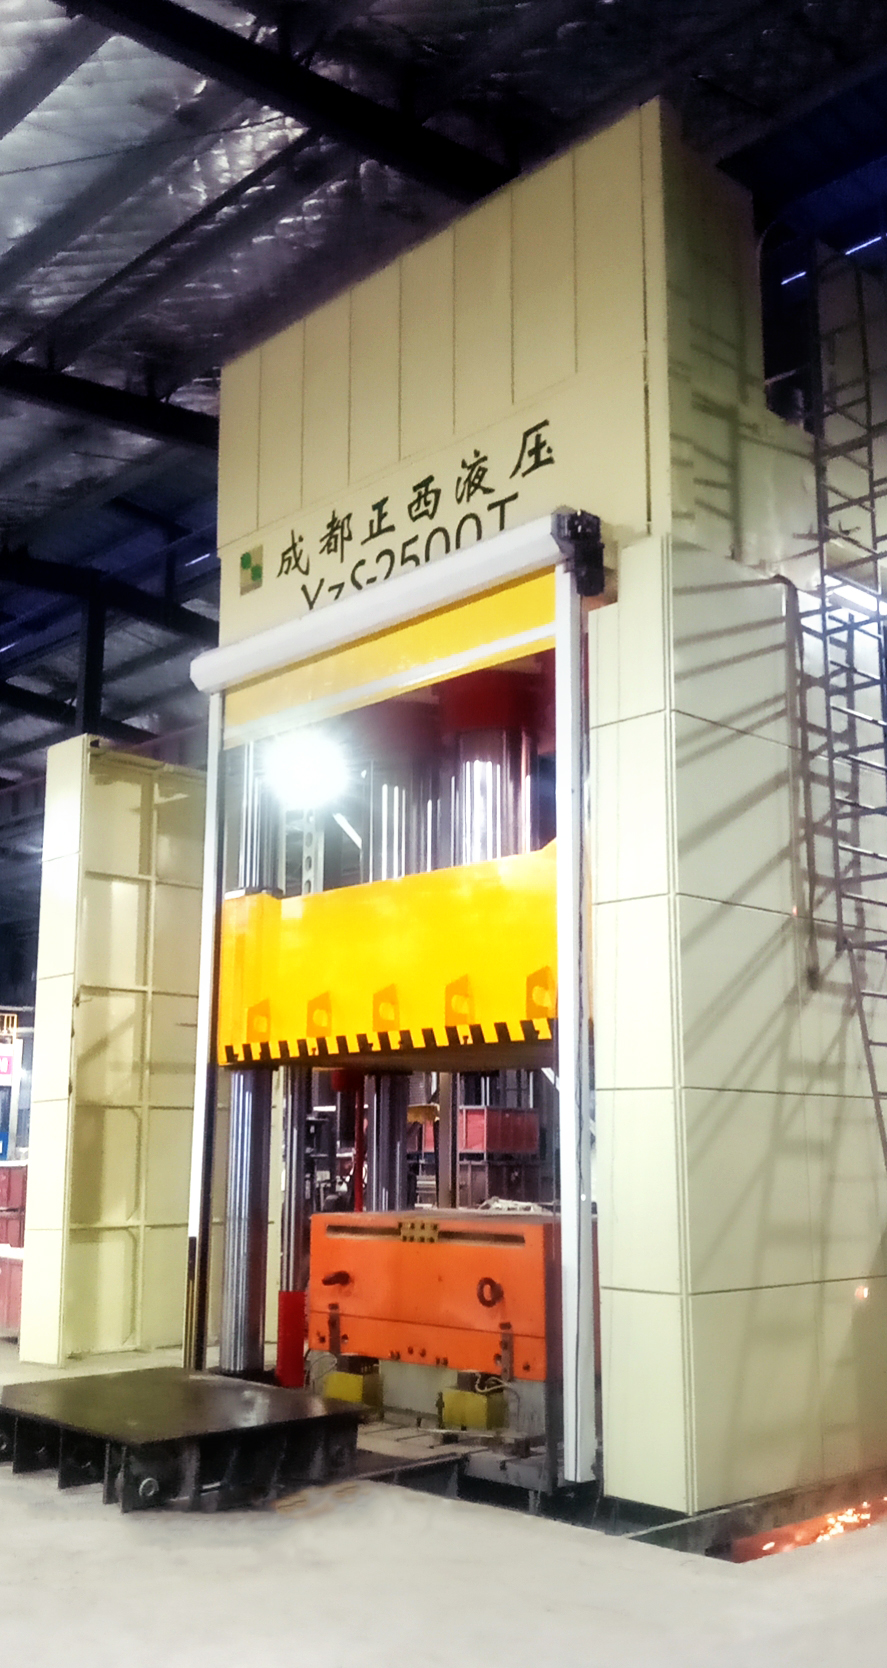 2500T Composite hydraulic press